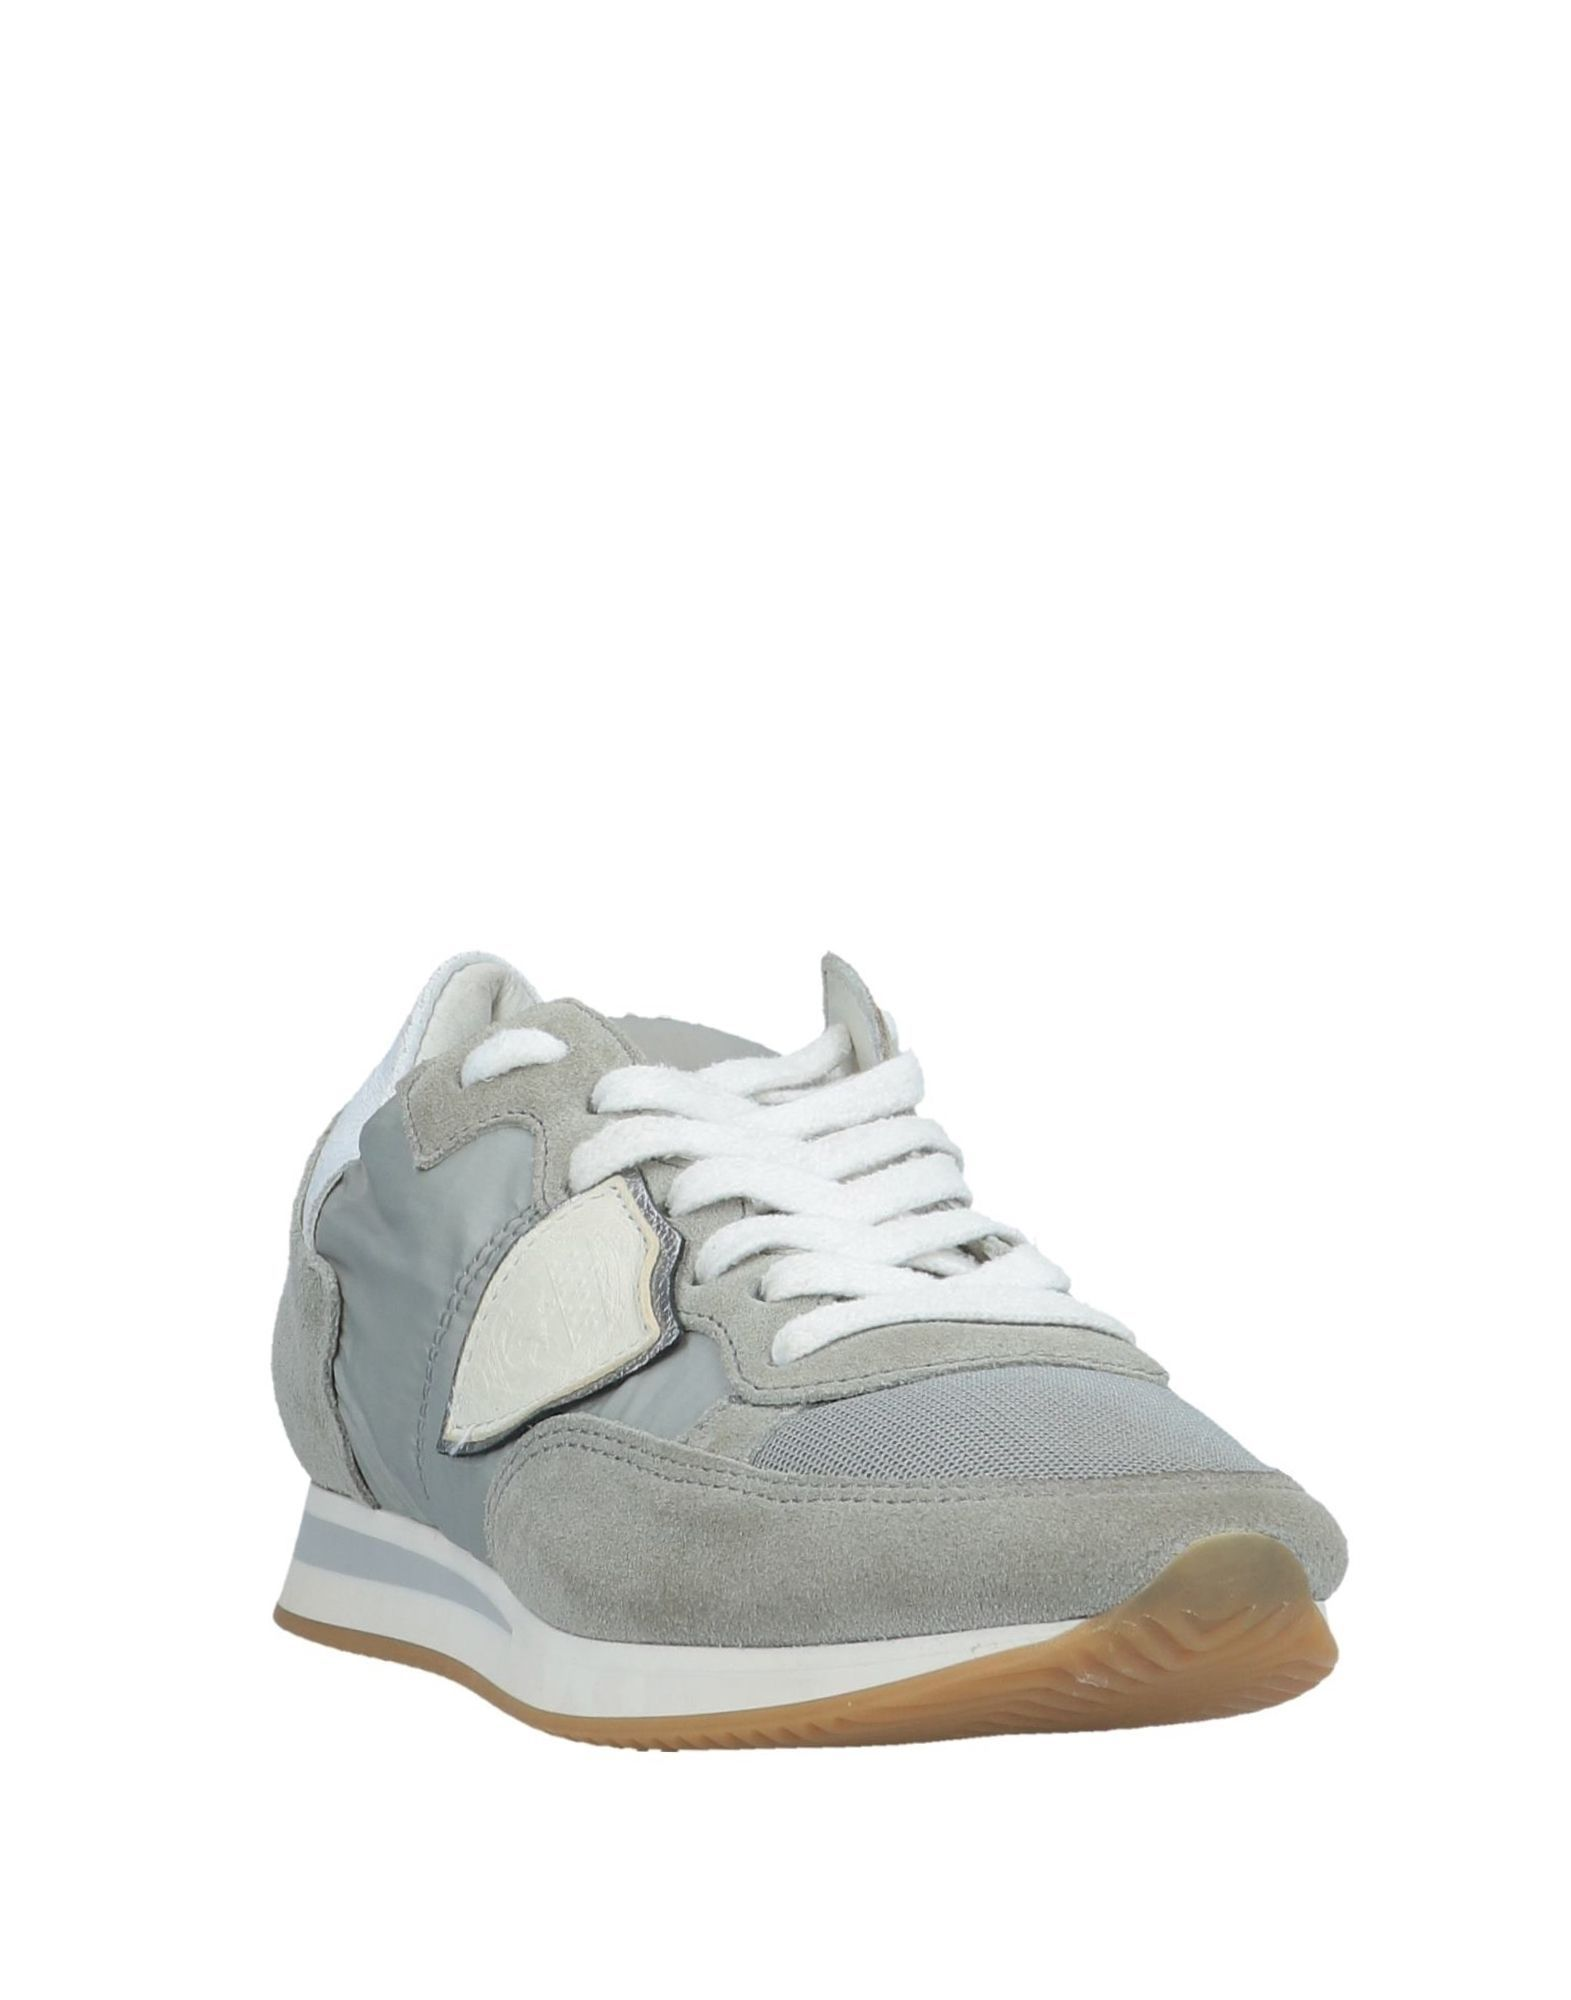 Philippe Model Light Grey Leather Sneakers